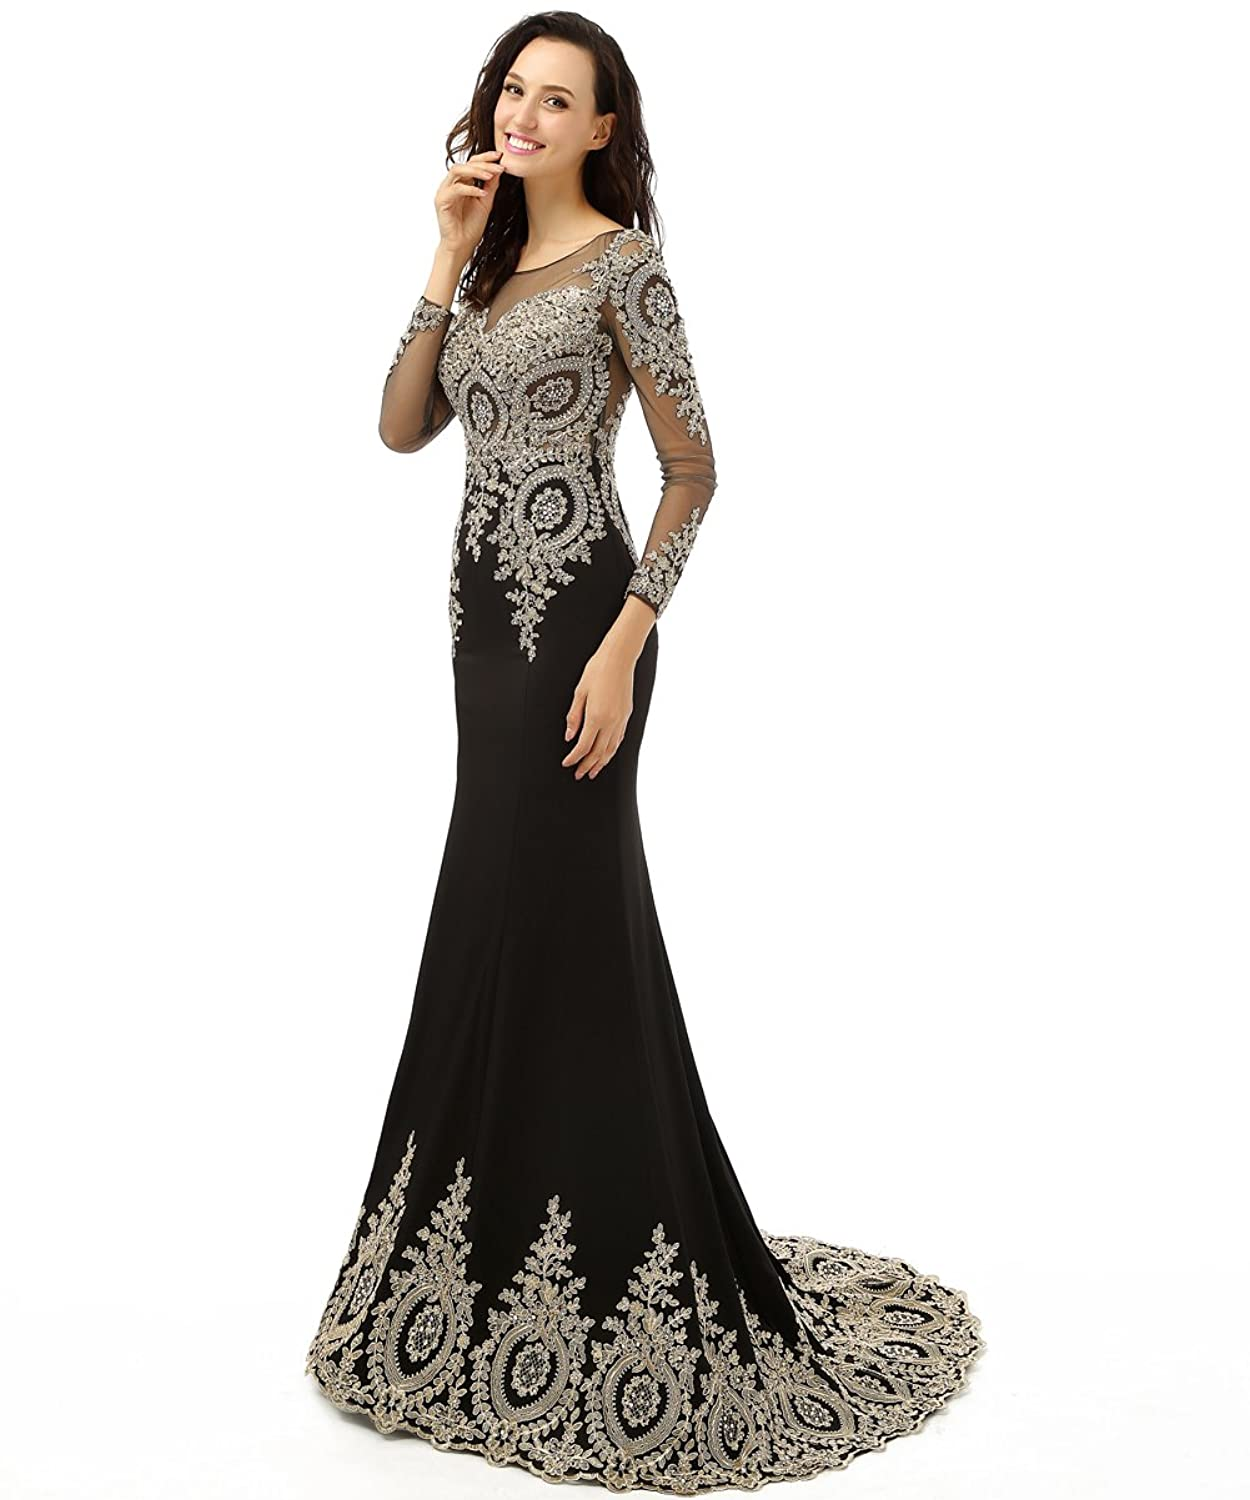 Amazon.com: MisShow Women&39s Embroidery Lace Long Mermaid Formal ...